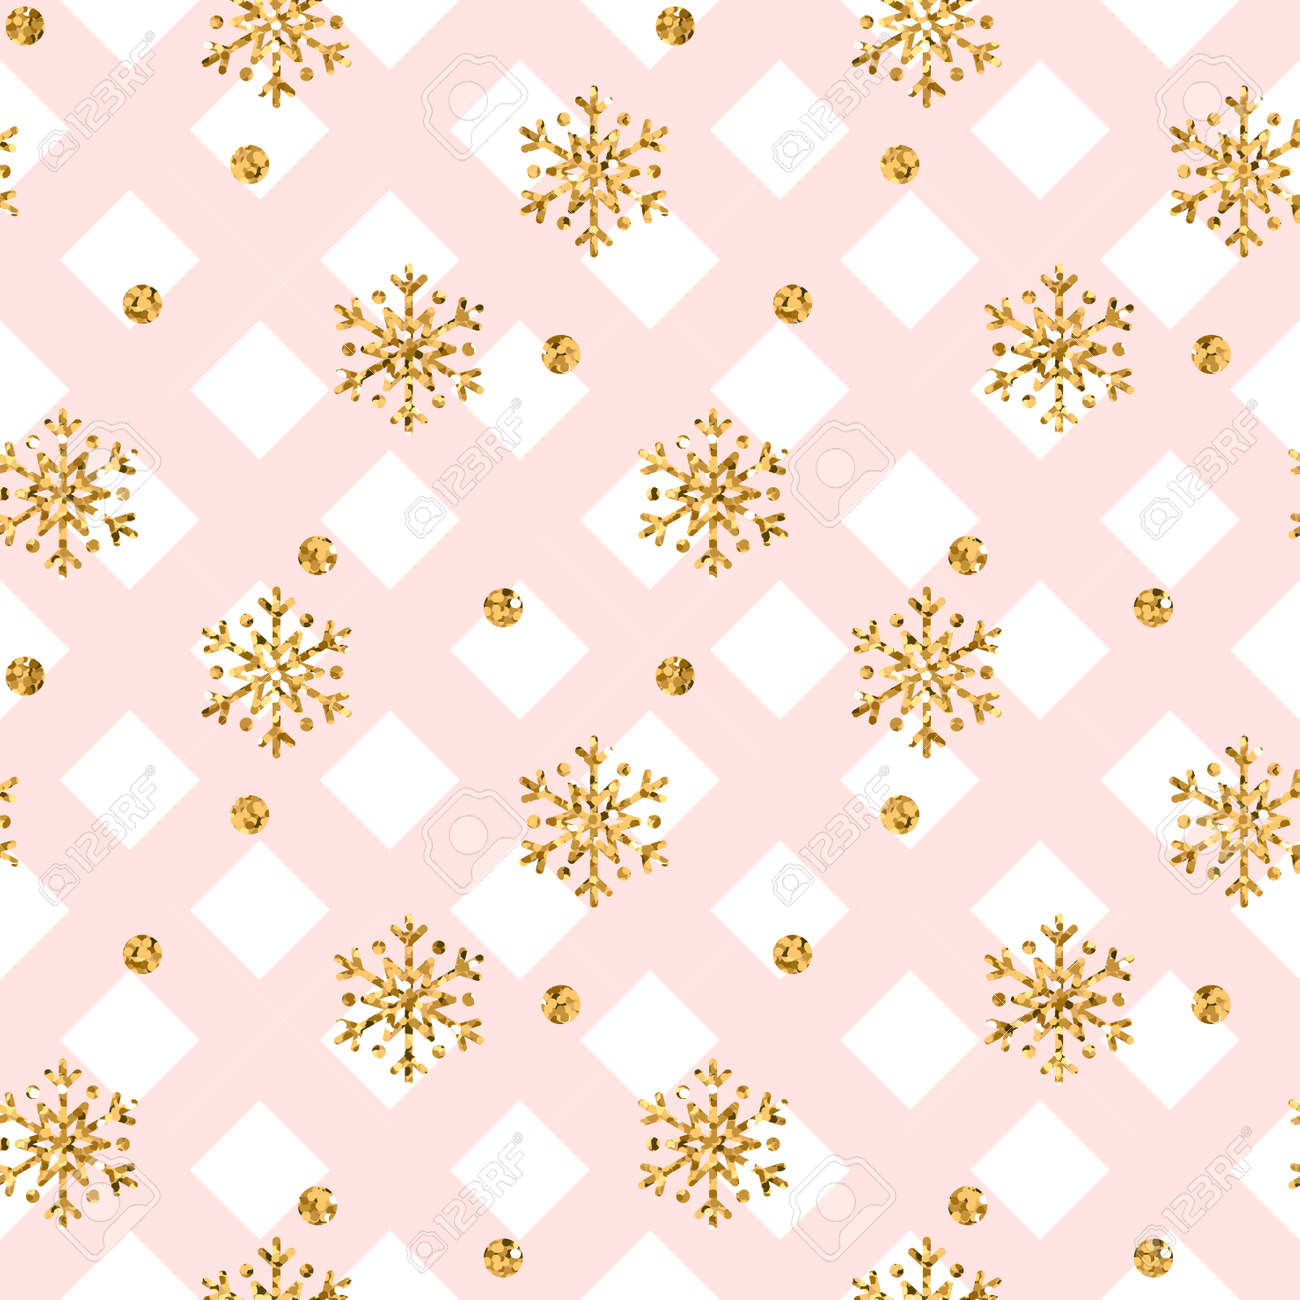 Christmas Gold Snowflake Seamless Pattern Golden Snowflakes On Pink And White Rhombus Background Winter